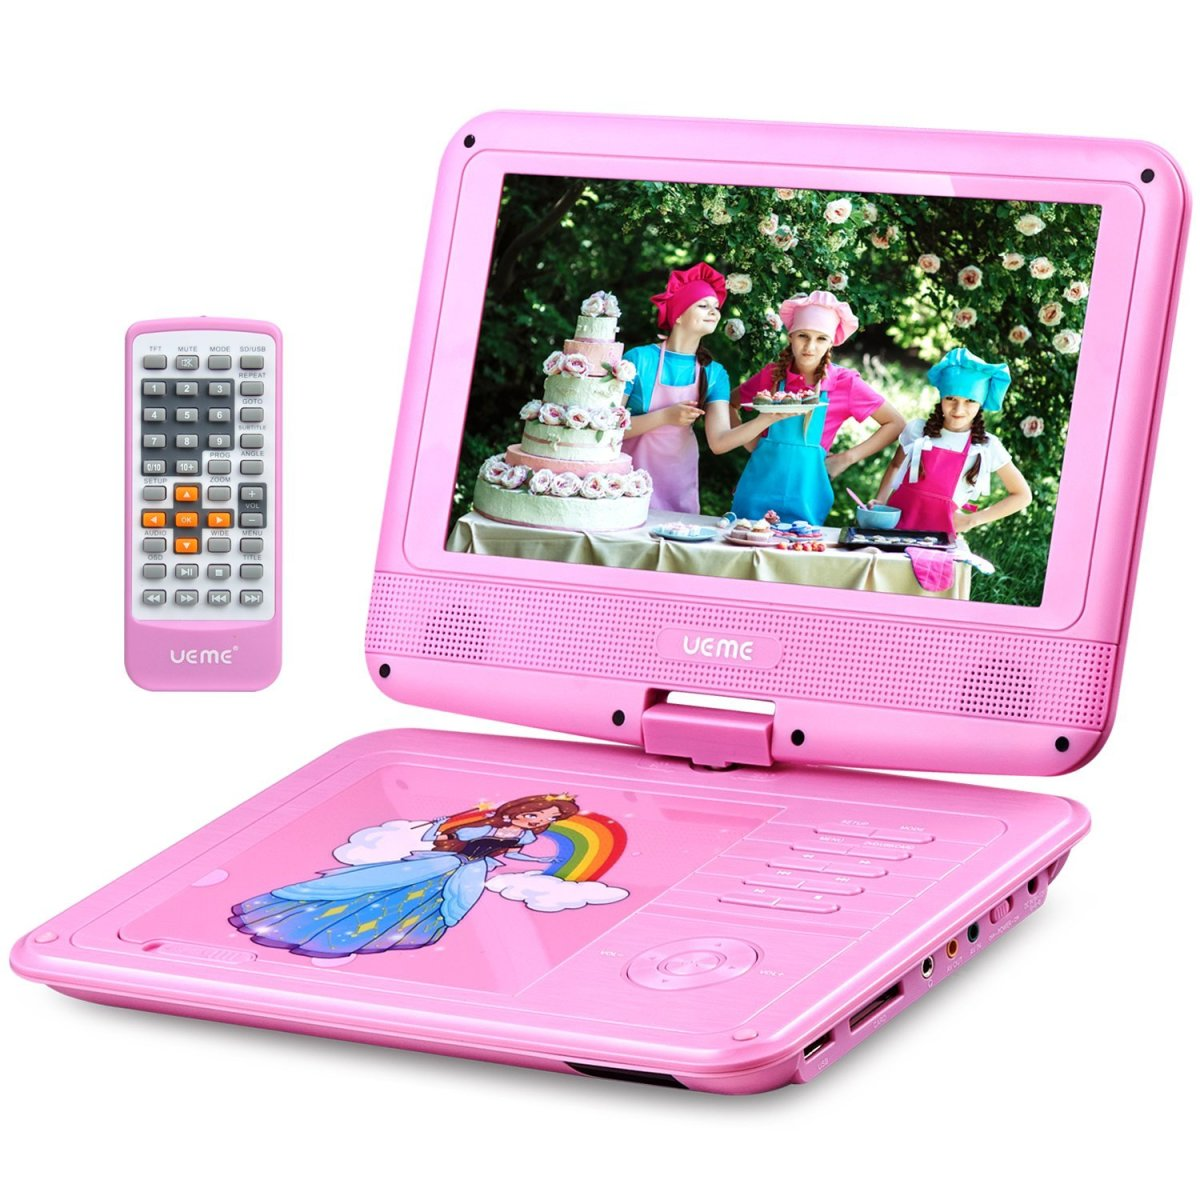 The Best 3 Portable DVD Players for Kids in 2019